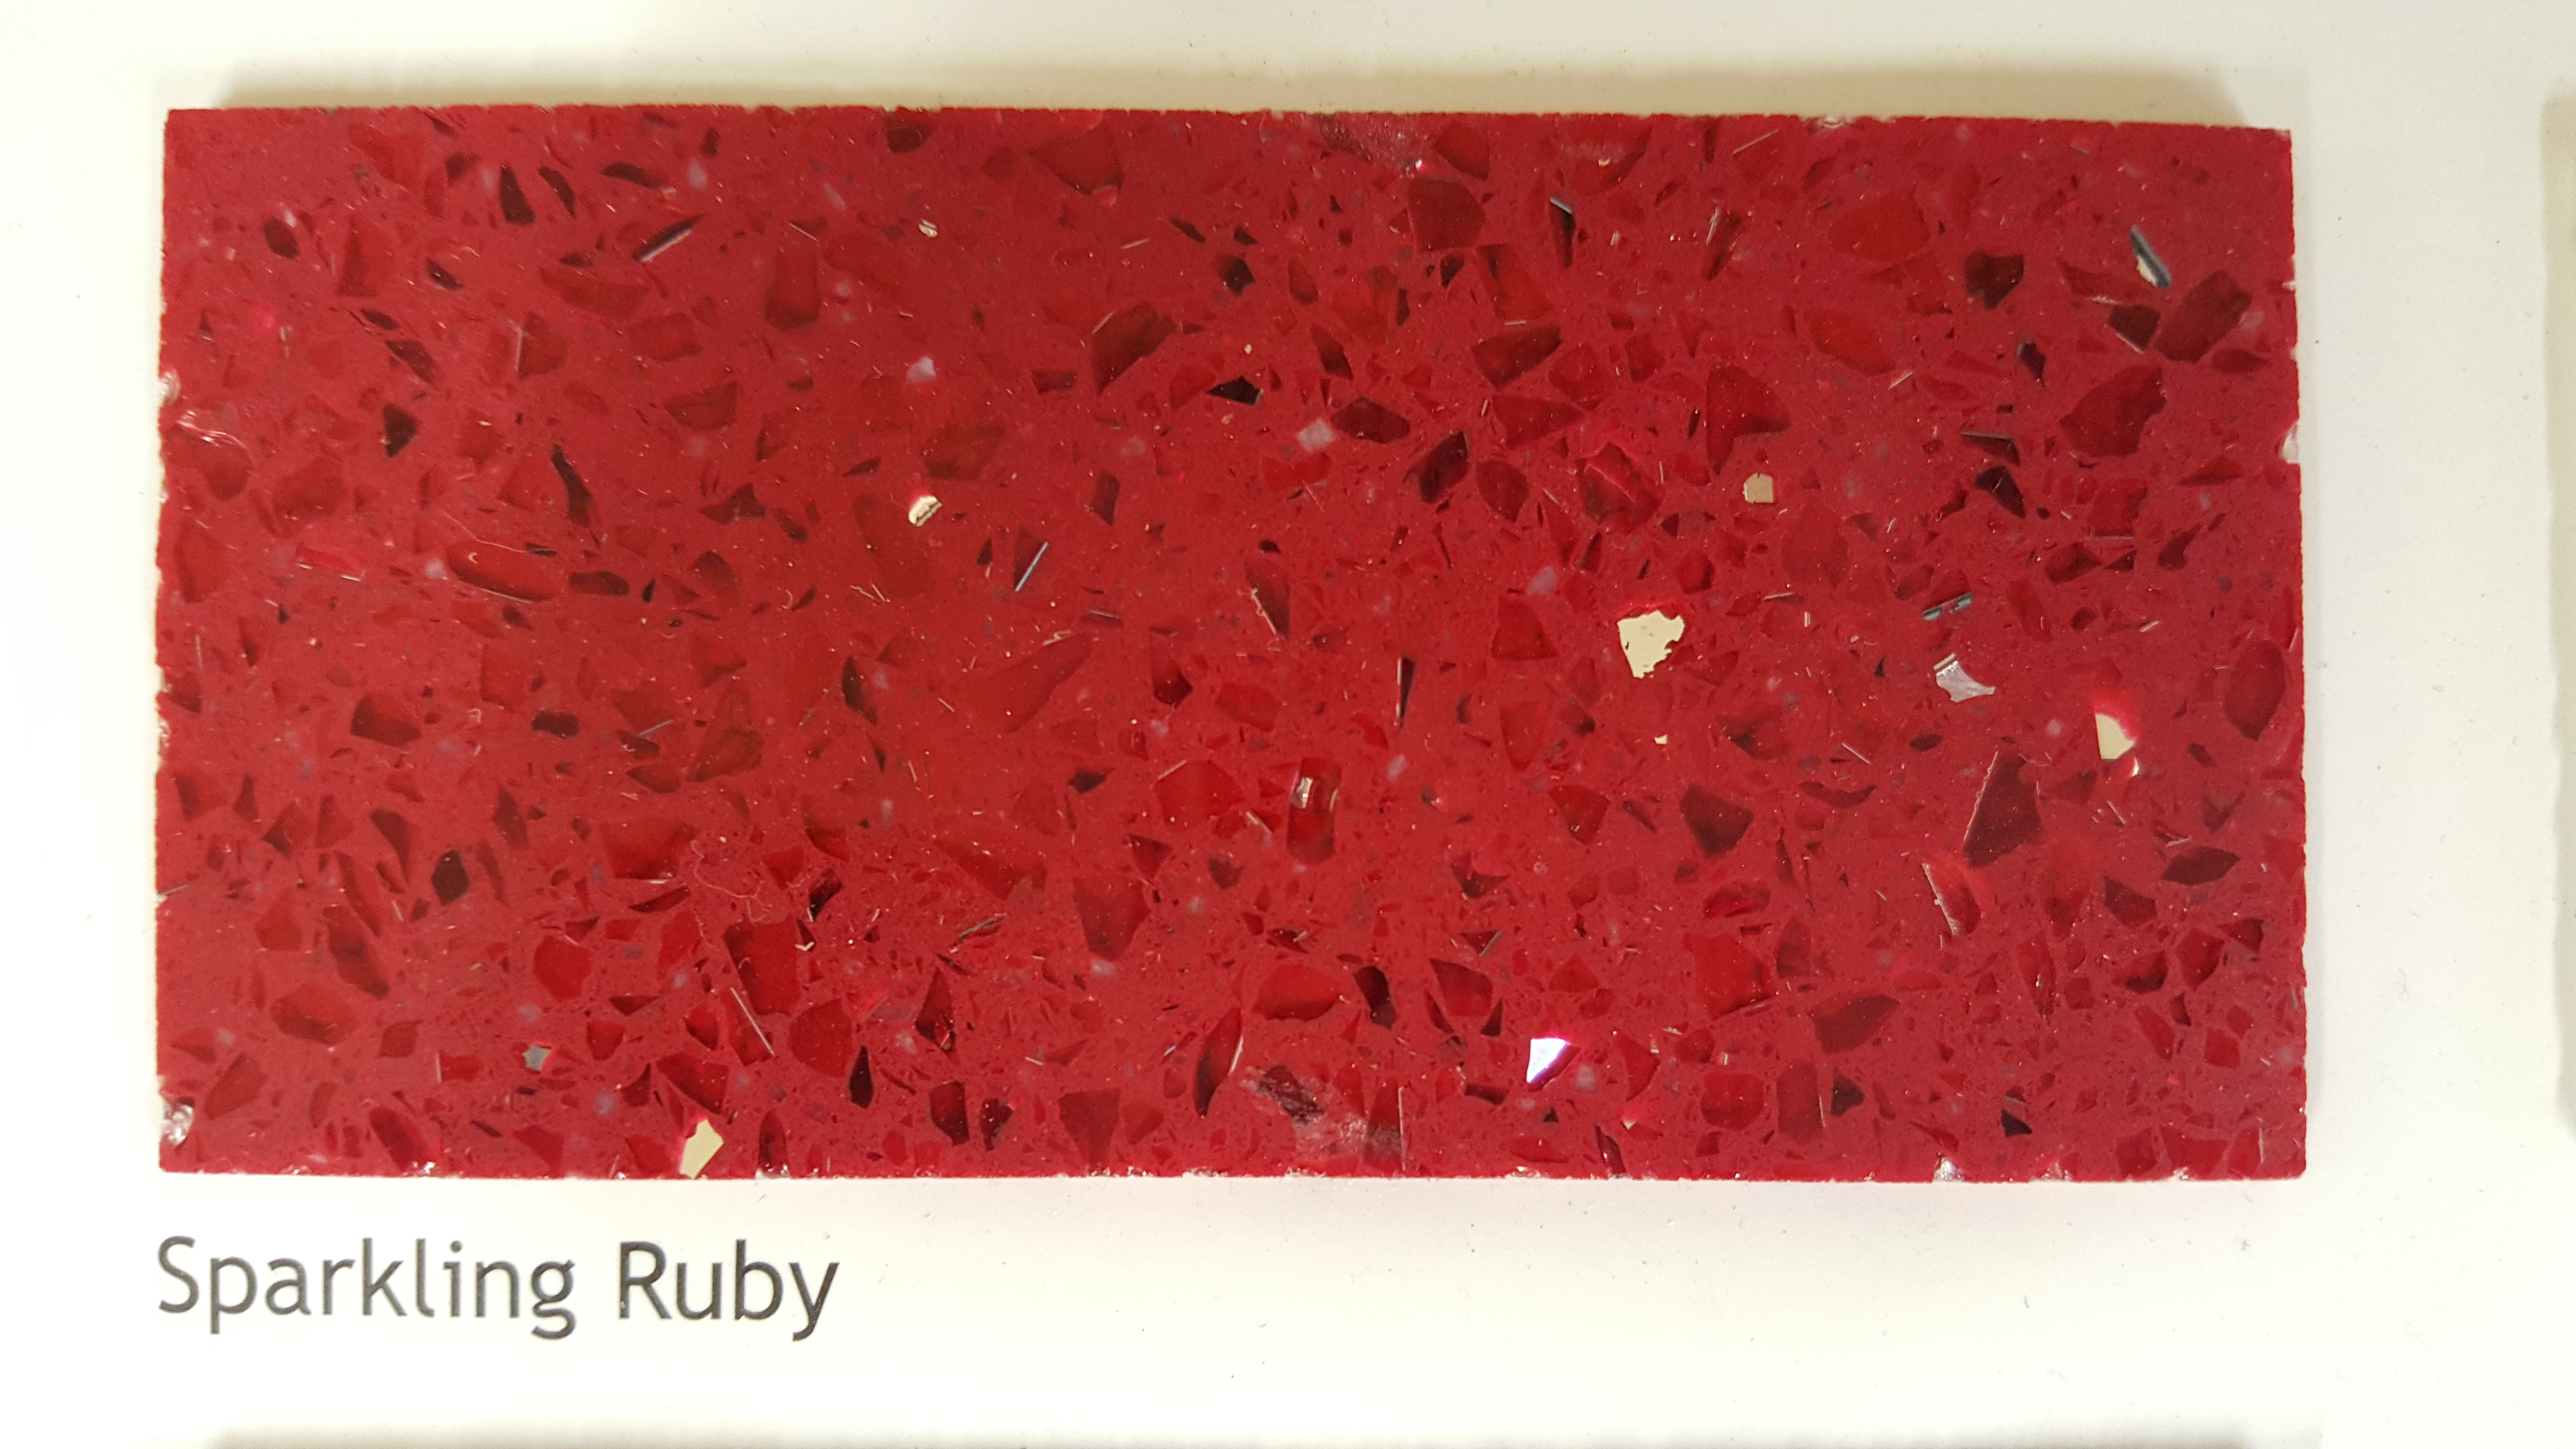 Sparkling Ruby